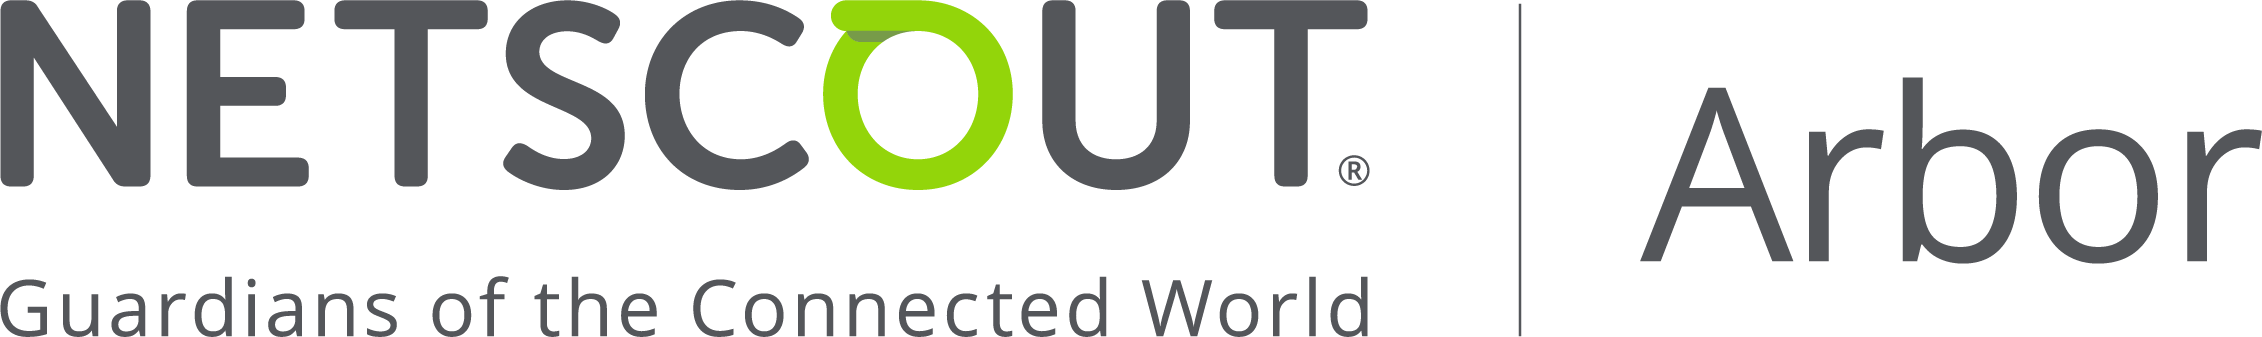 Netscout Arbor DDoS Protection from InfoGuard.